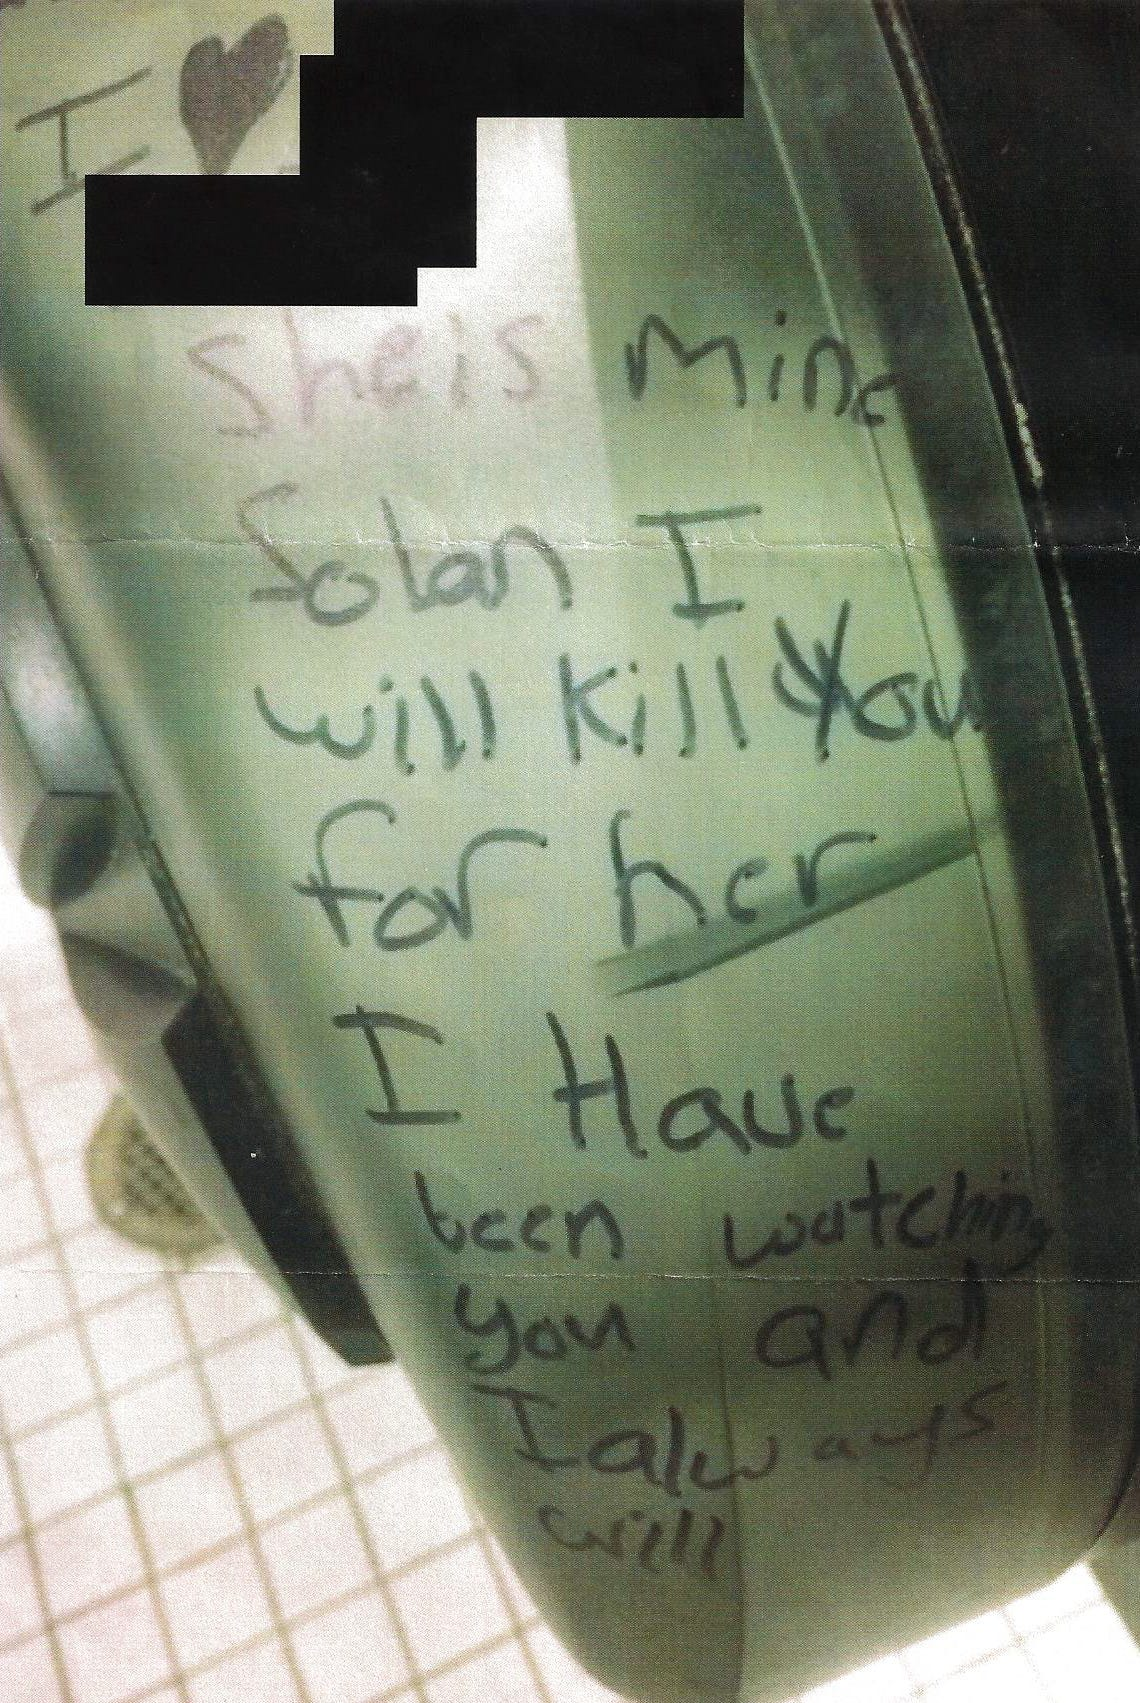 Solan Caskey was threatened via graffiti in the bathroom at his high school. He responded to the threat and was eventually Baker Acted.